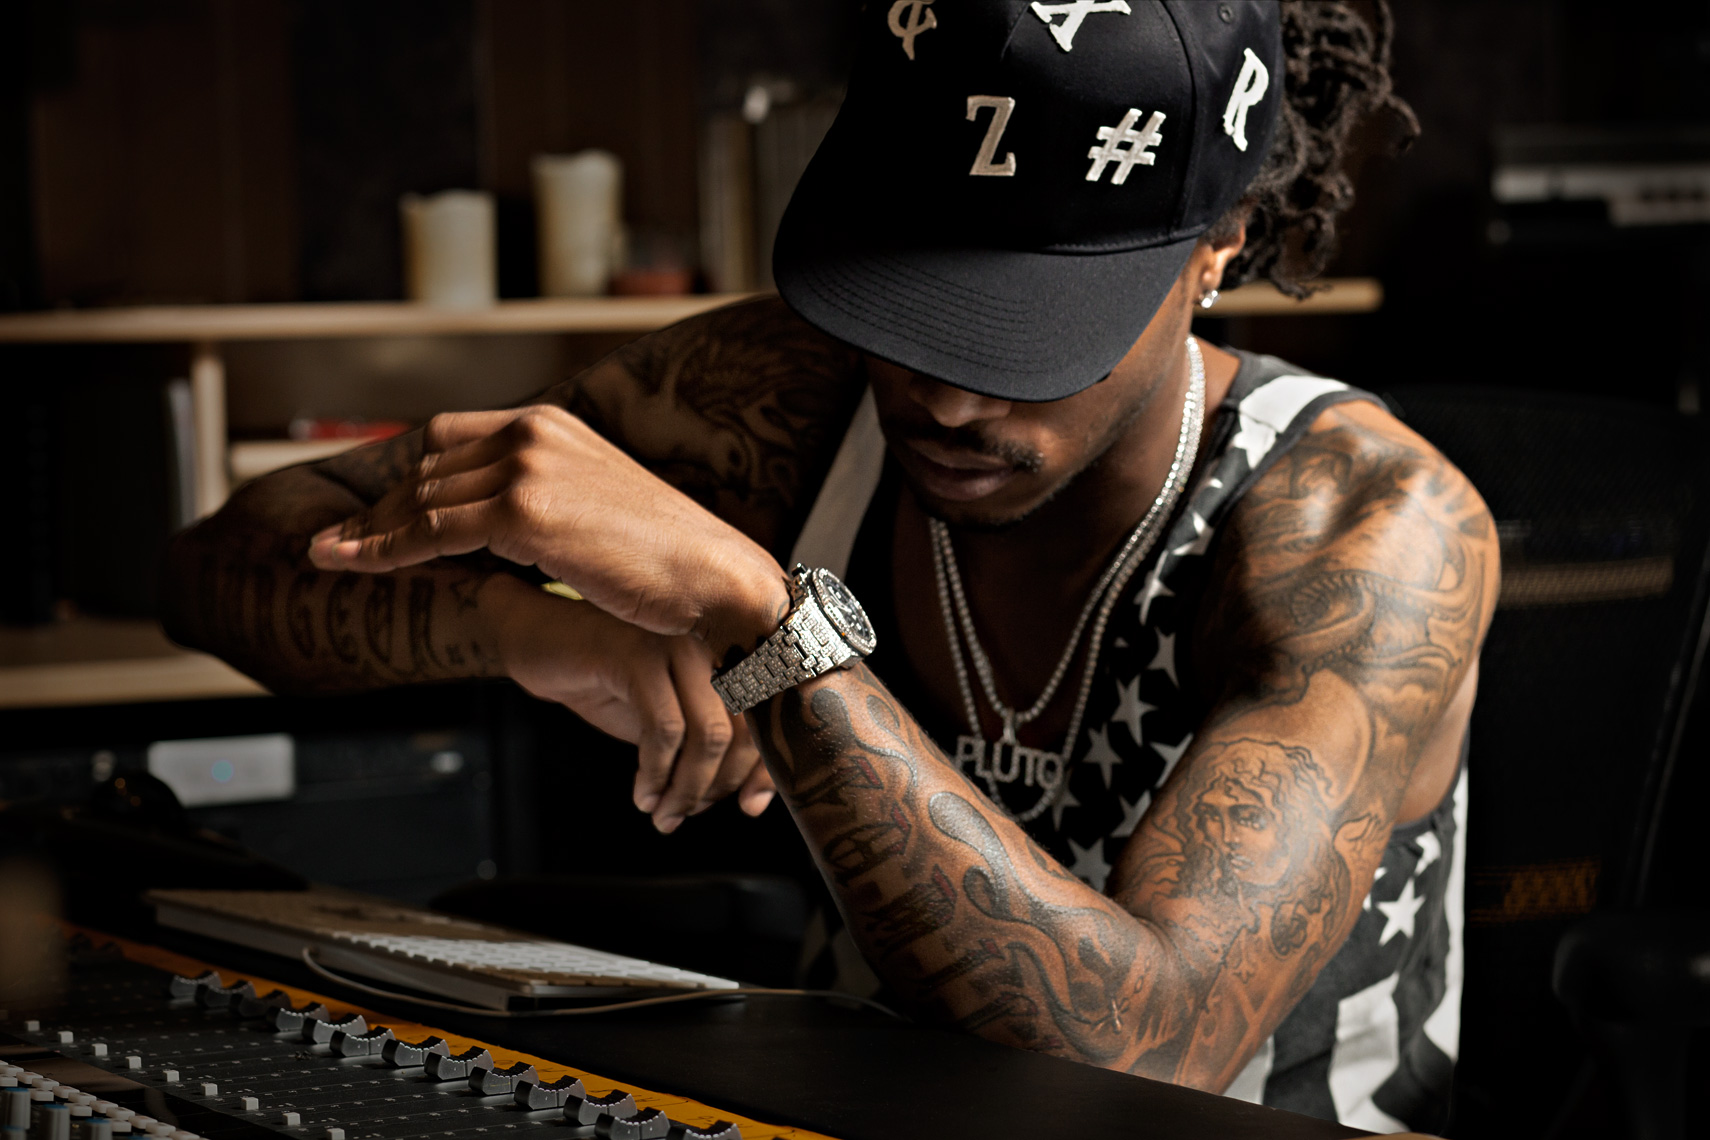 Portrait of Atlanta rapper Future at mixing desk in Atlanta studio